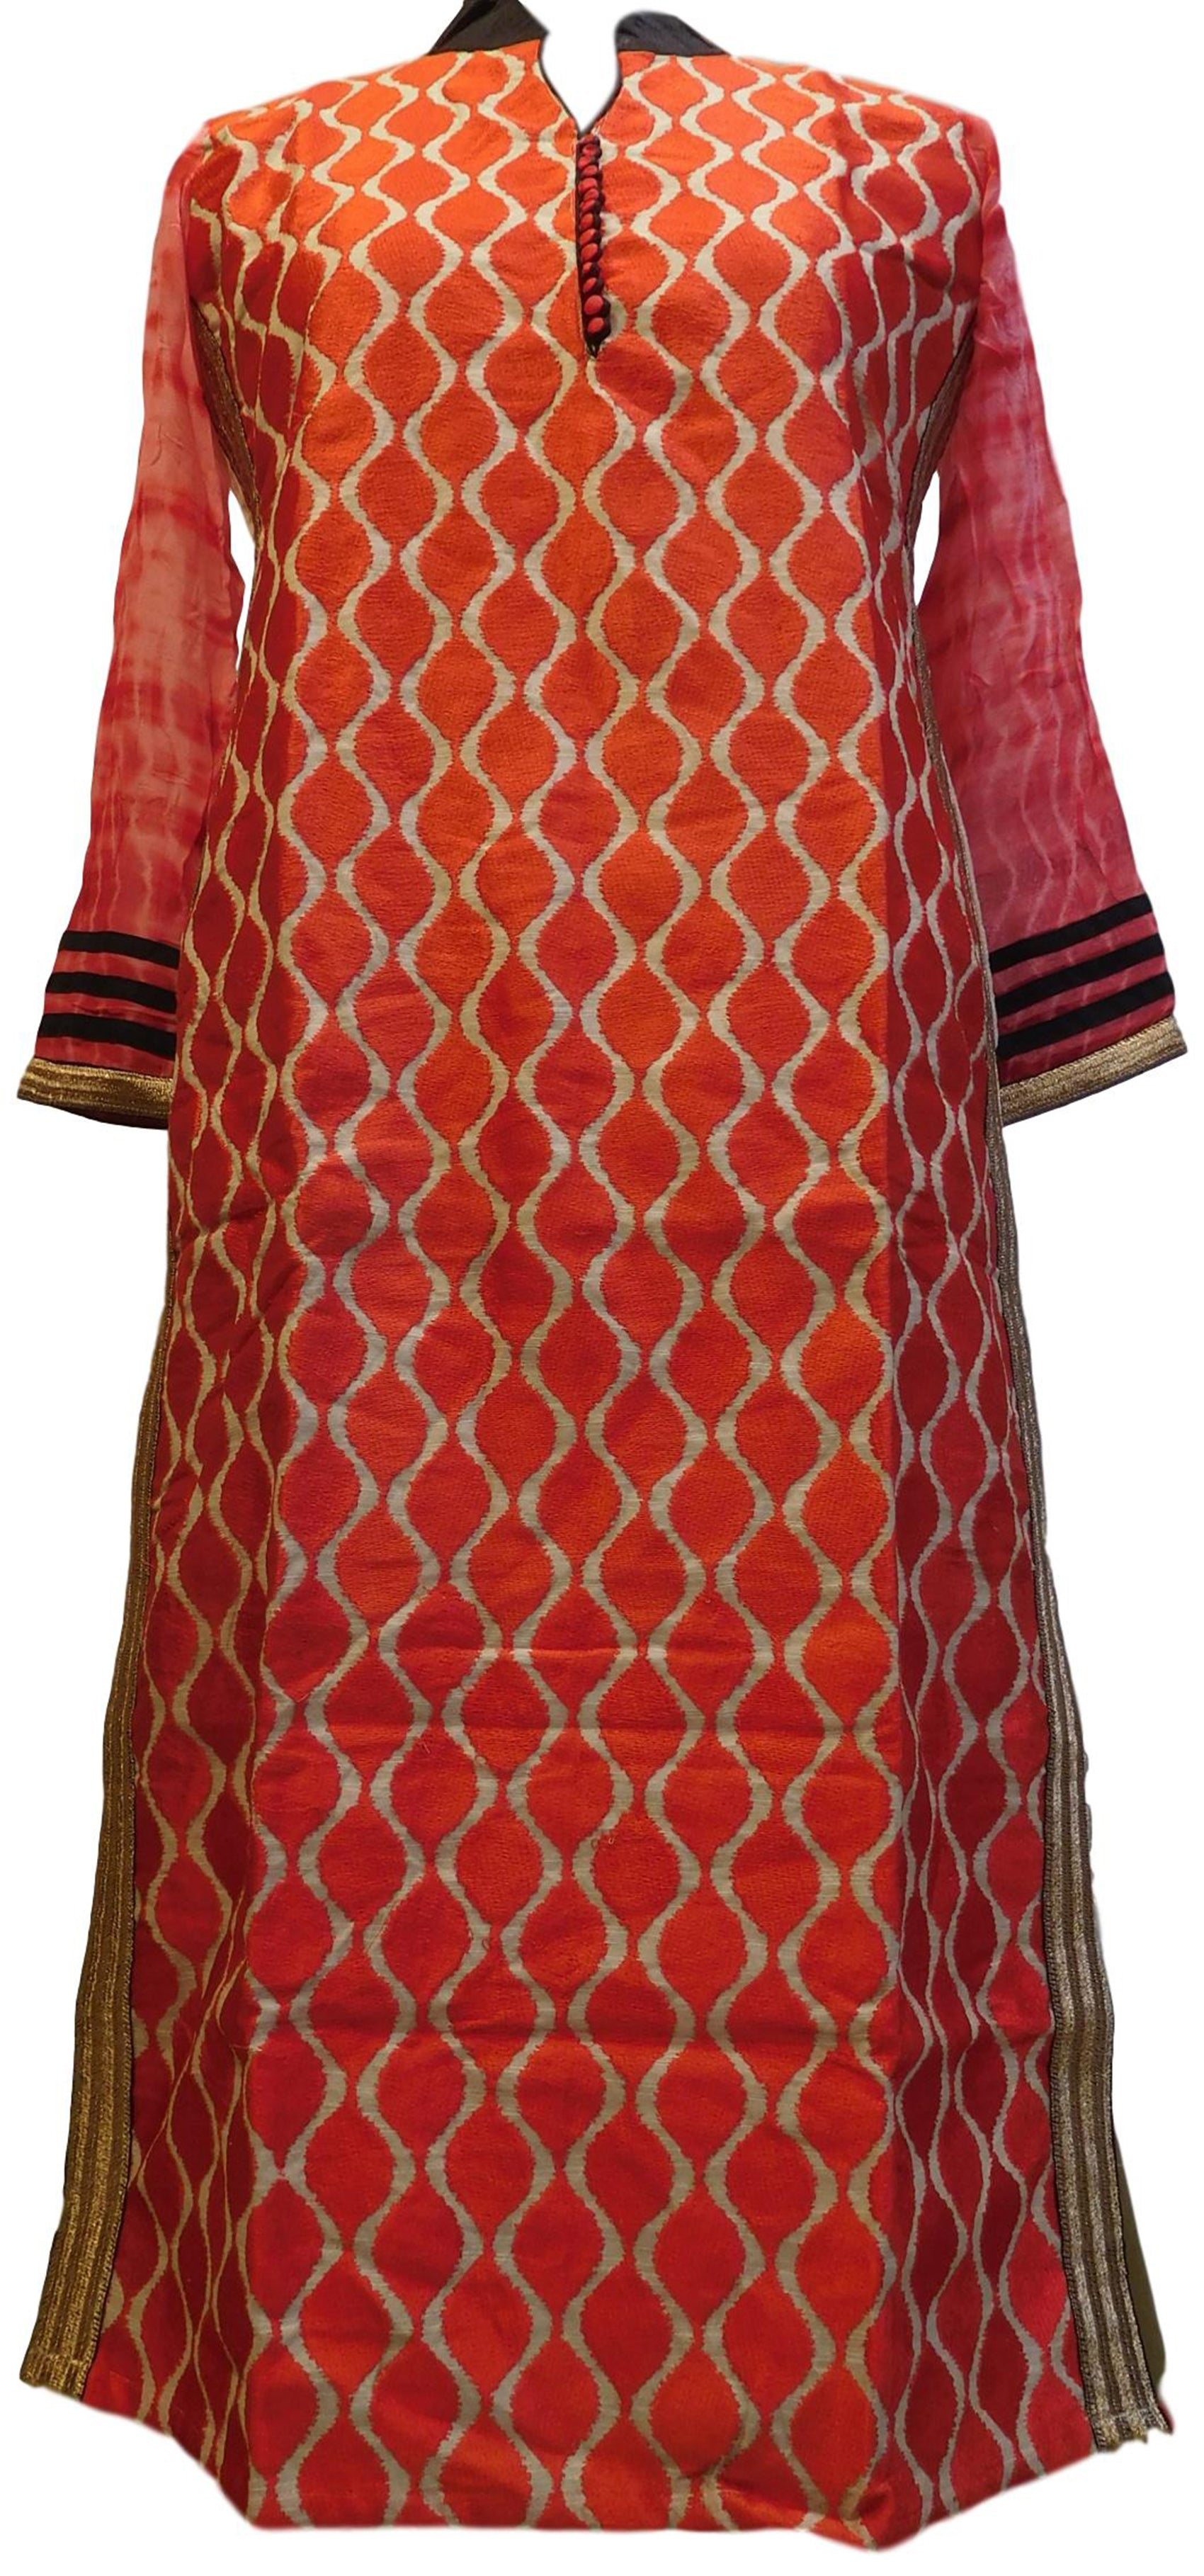 Red Designer Cotton (Chanderi) Hand Embroidery Zari Thread Work PartyWear Bollywood Style Kurti Kurta